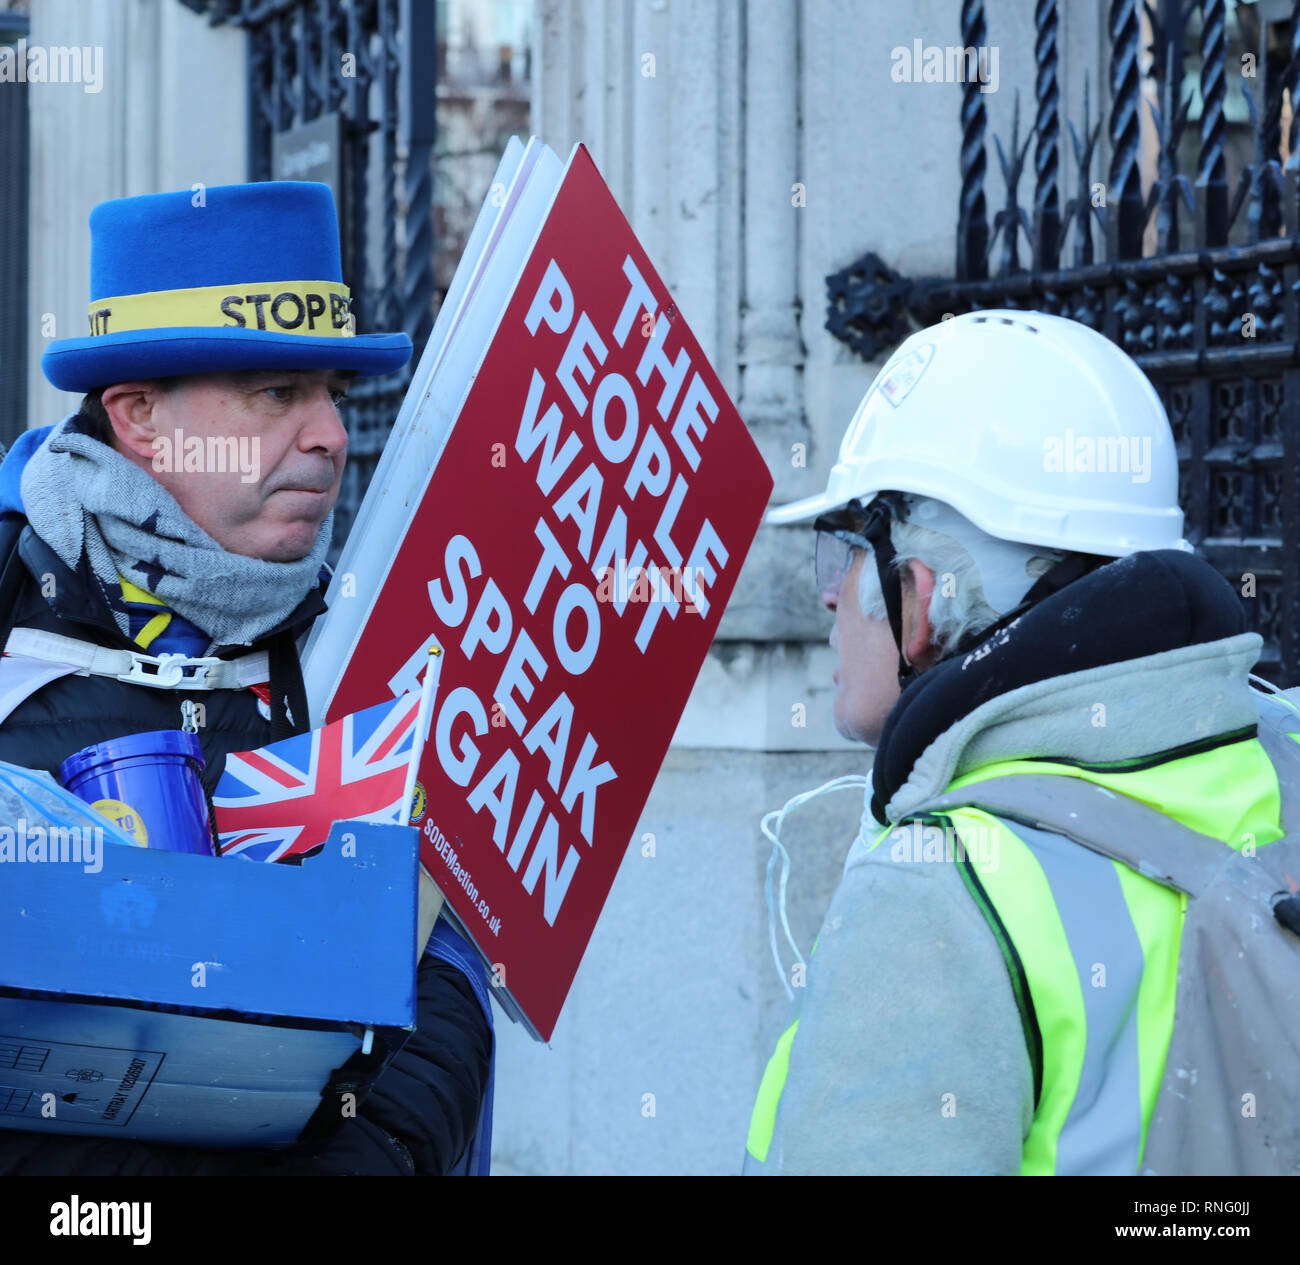 An anti and pro Brexit campaigner, arguing outside the House of Parliament, on Parliament Square, London, UK, about the pros and cons of Brexit. - Stock Image